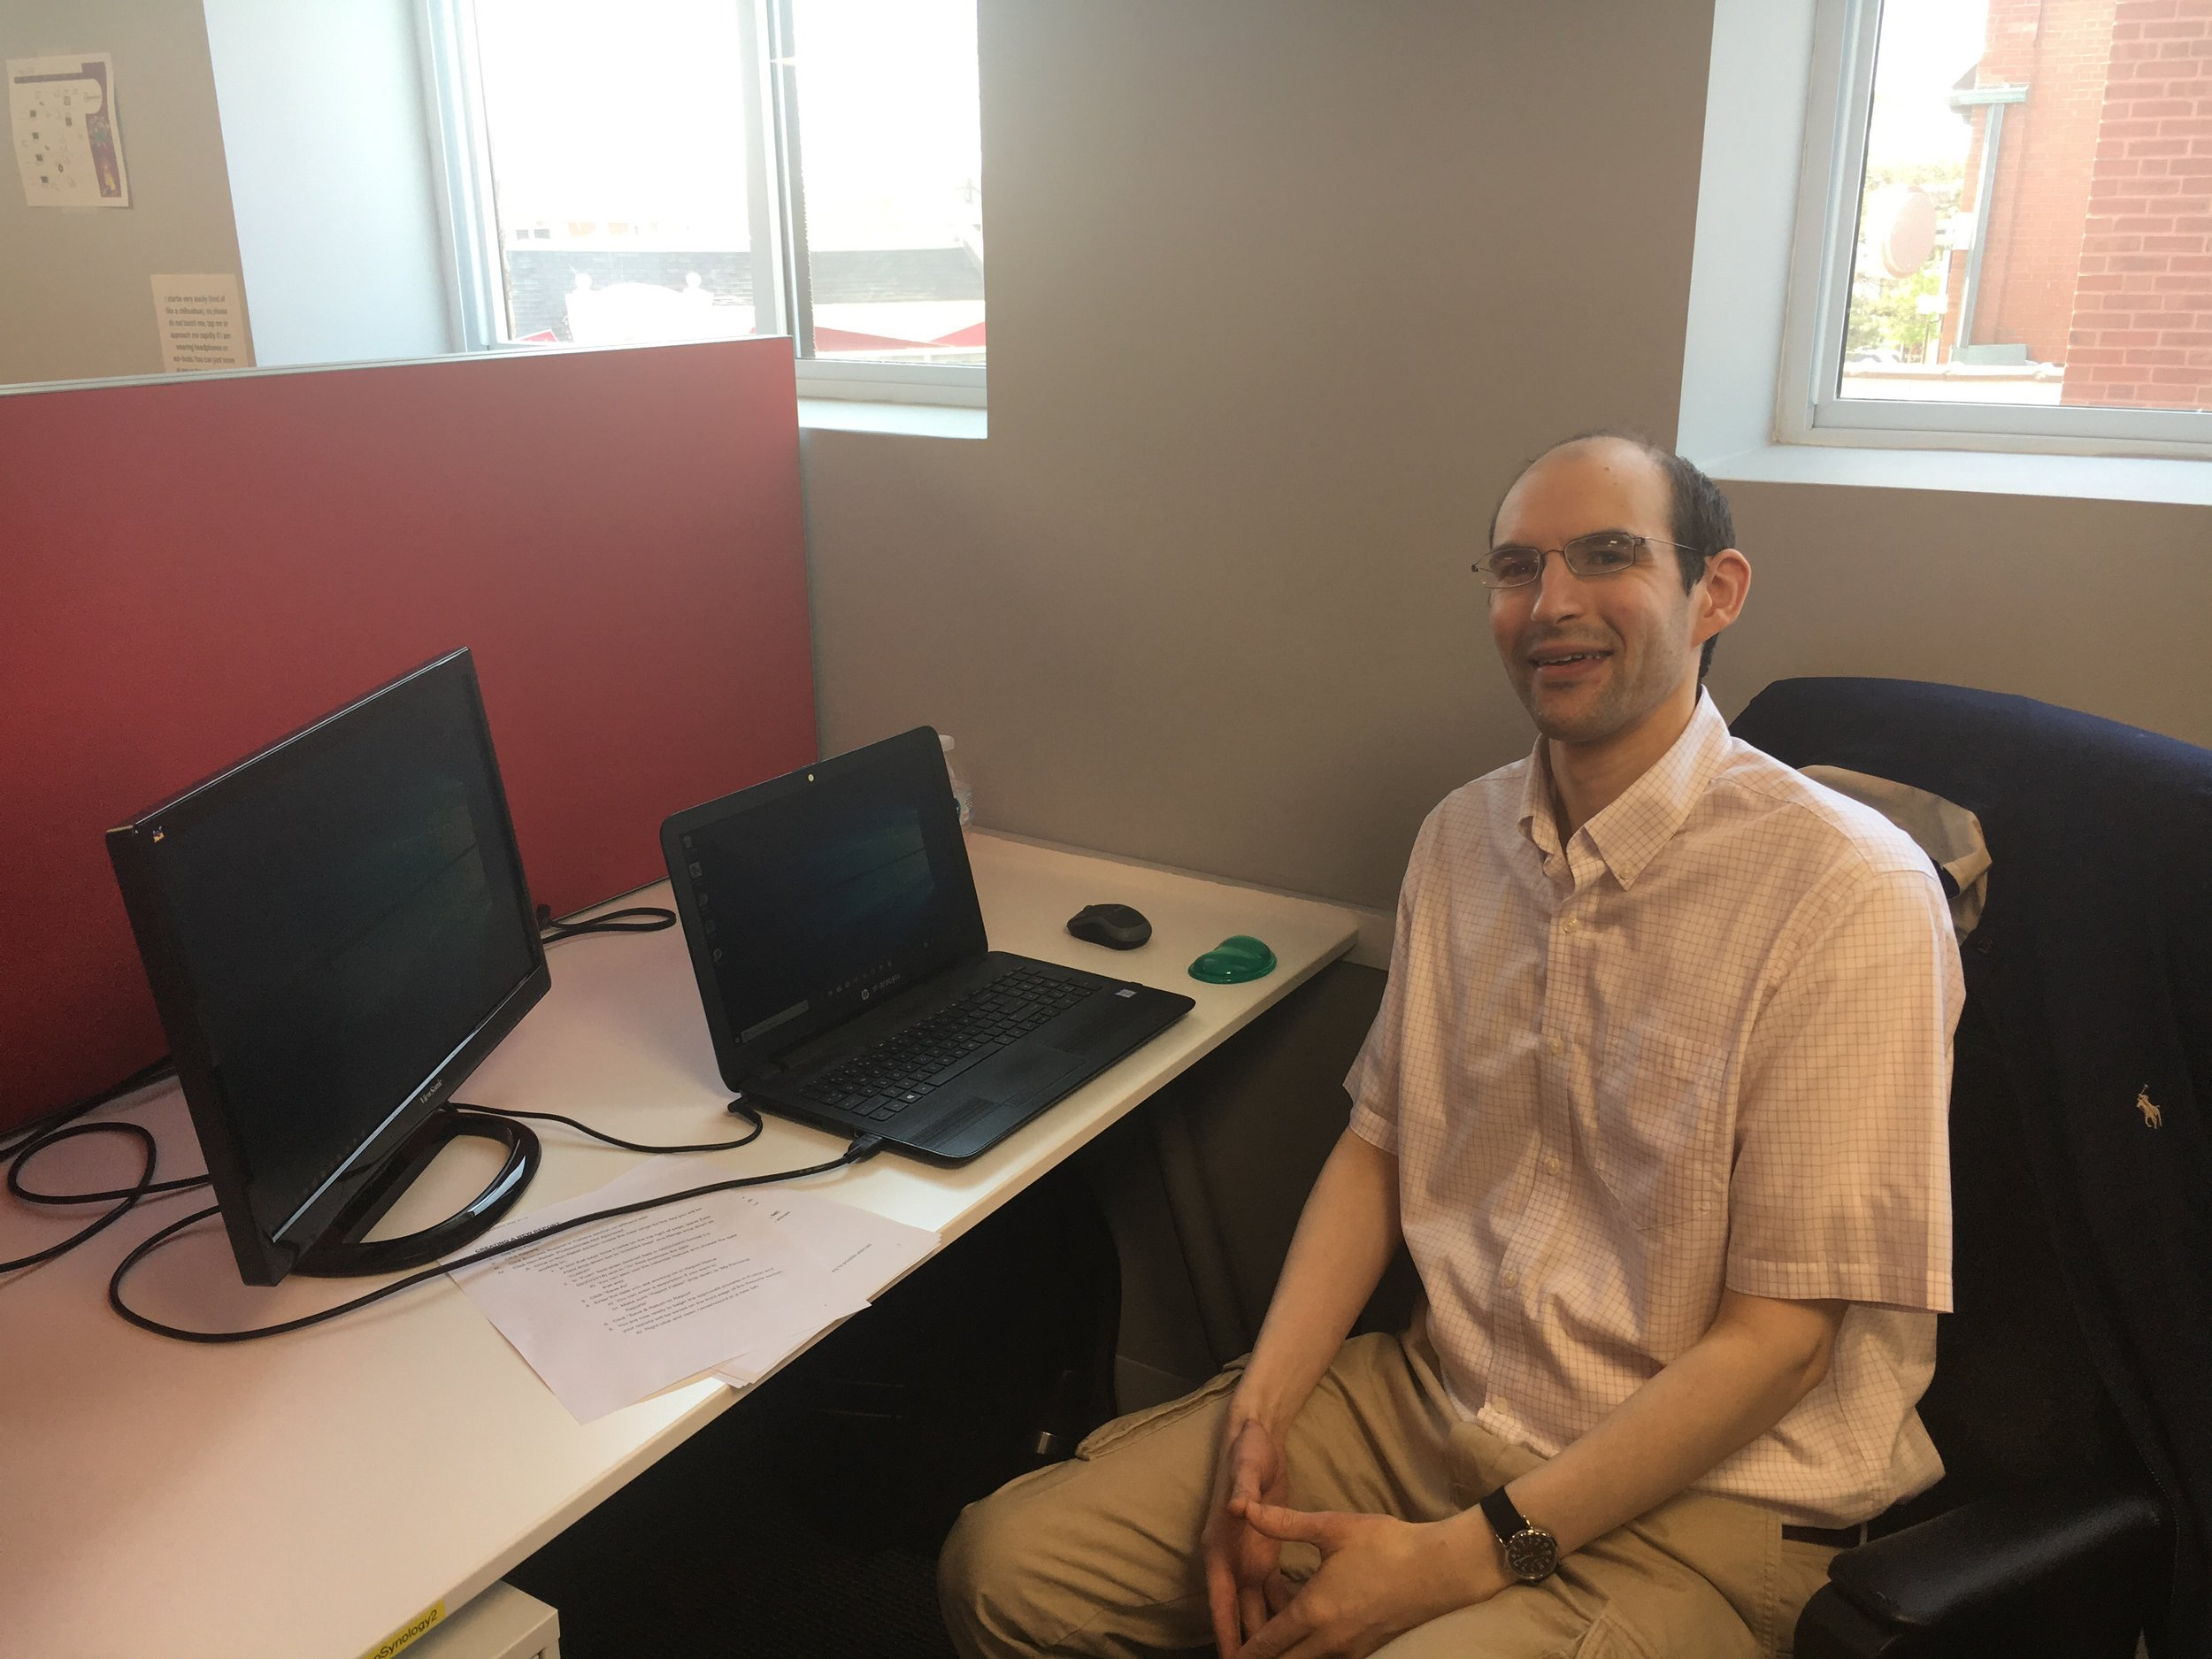 """I like the environment. It is very supportive. If I have questions, I feel comfortable reaching out to someone. I also like that it is quiet. I can focus and get my work done.""  -David, 33 years old, QA Analyst since 2017"